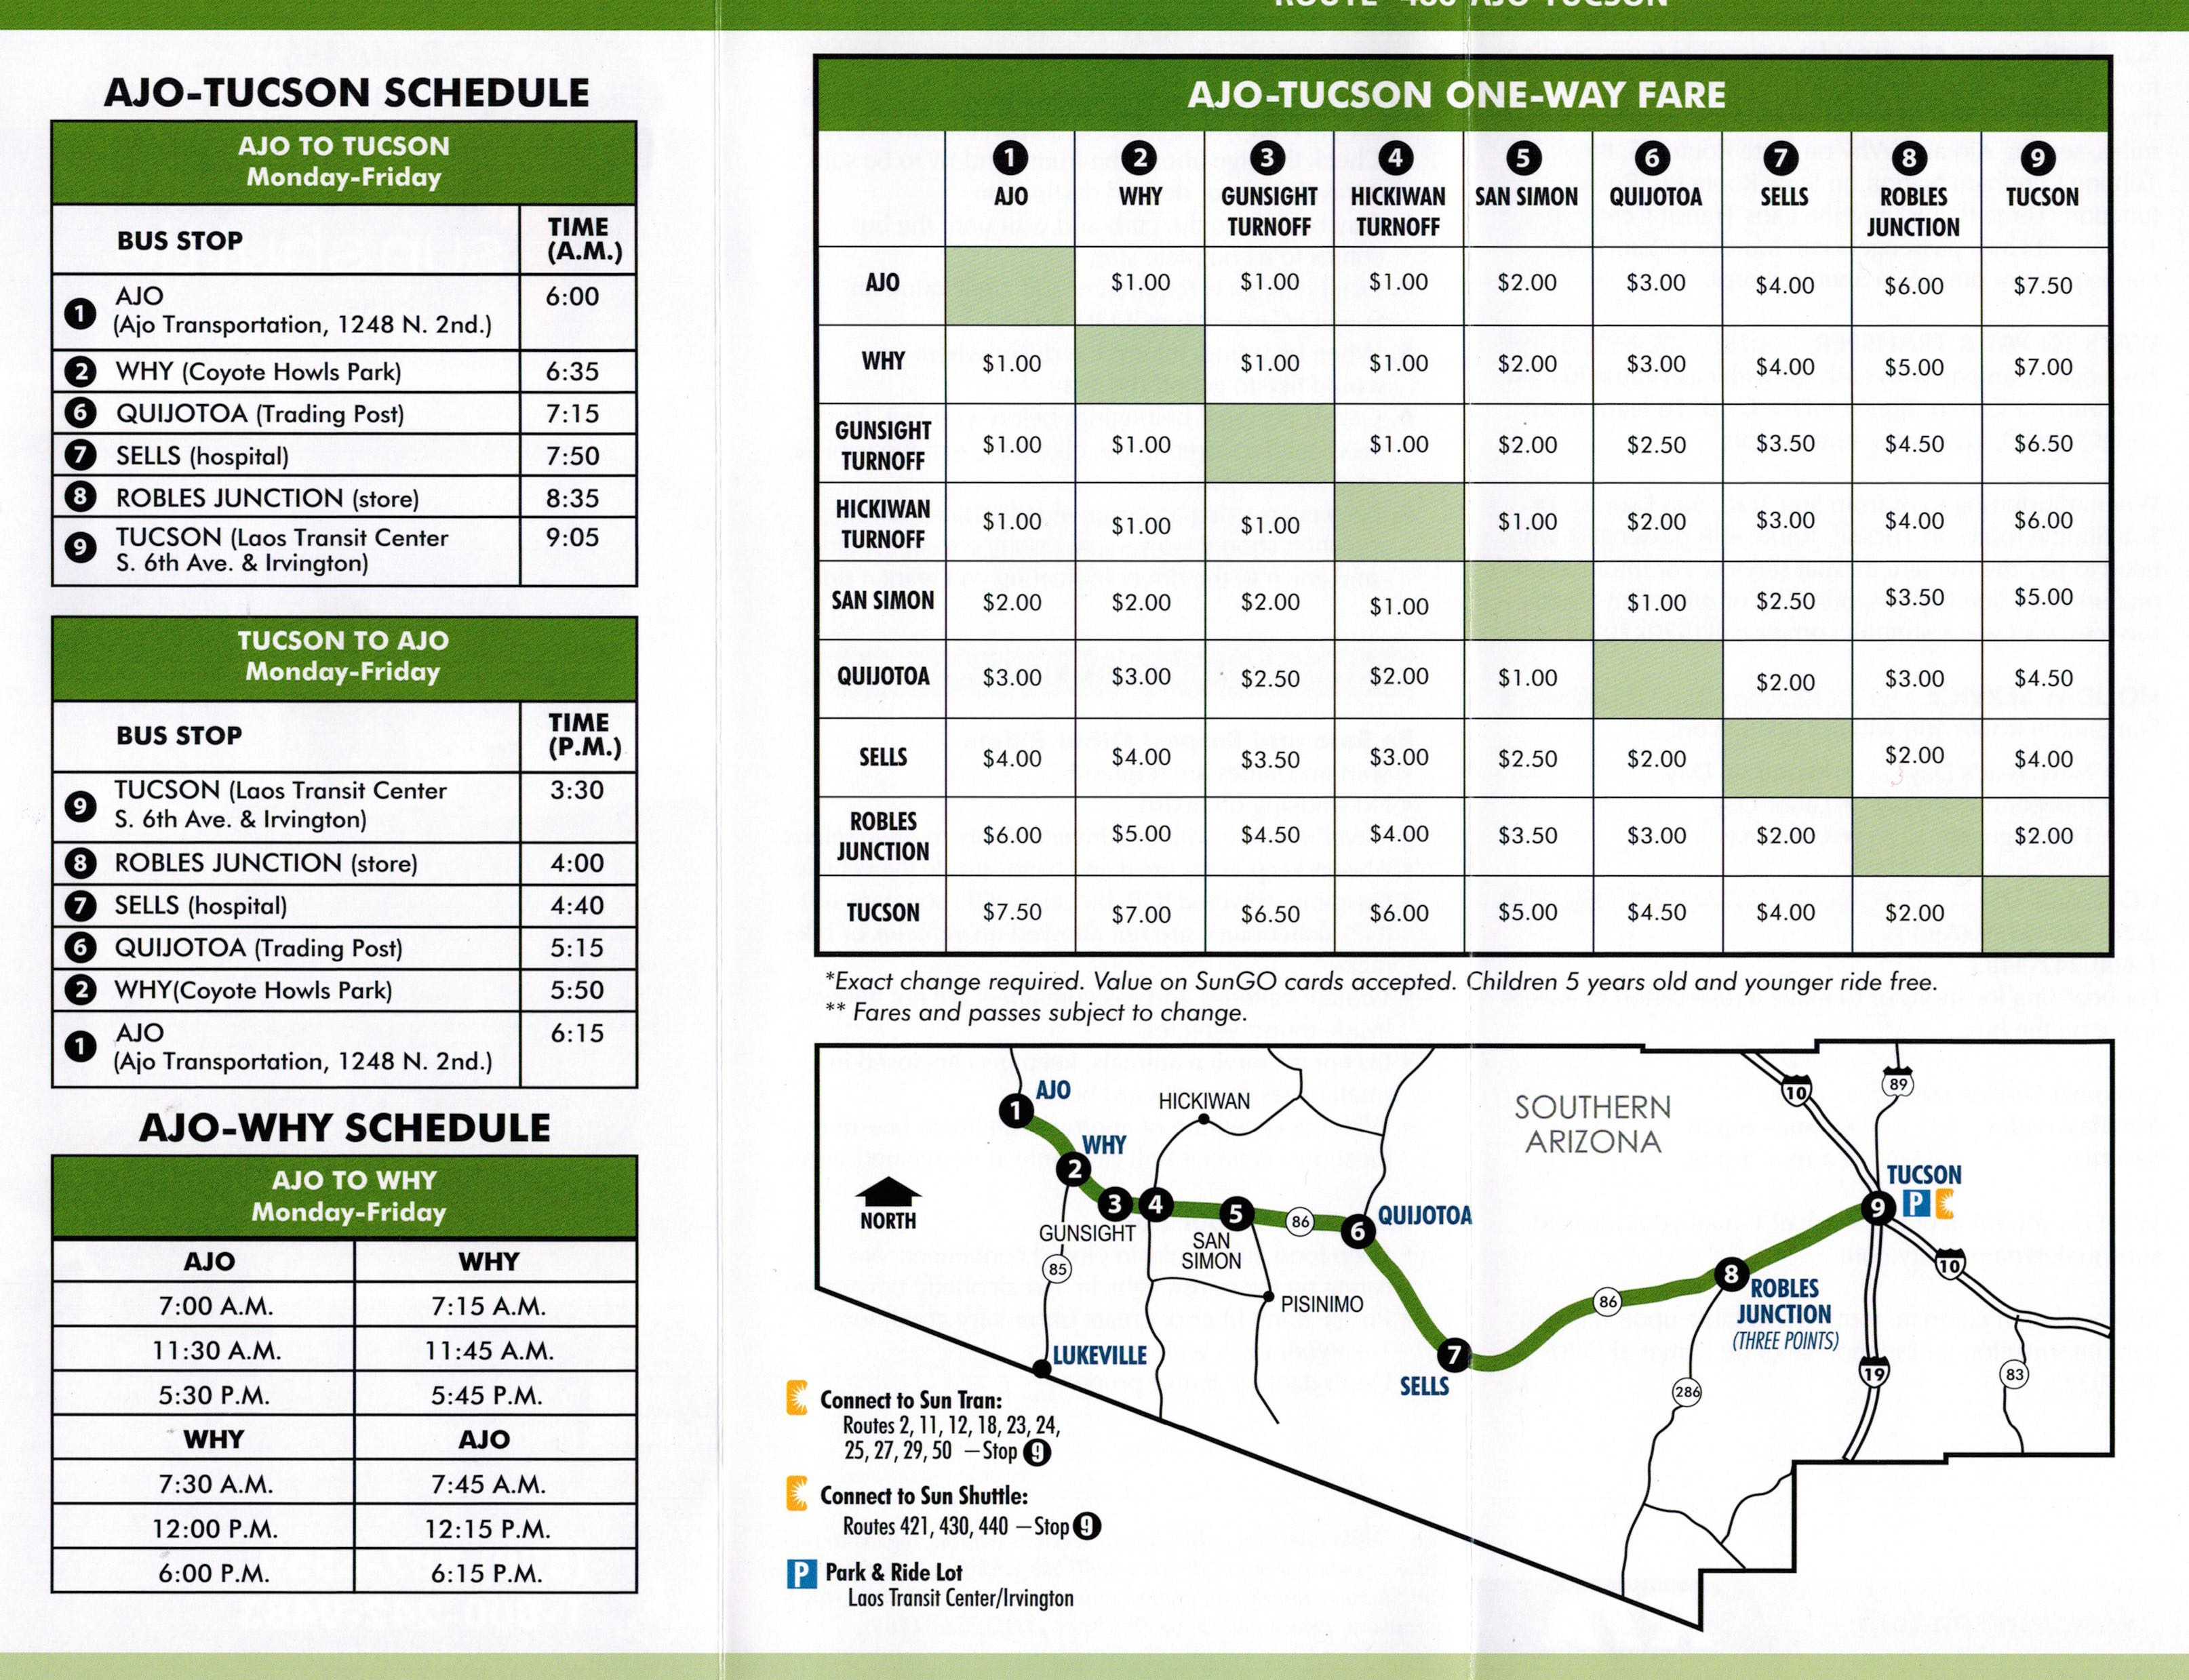 tucson route 486 bus schedule – ajo transportation